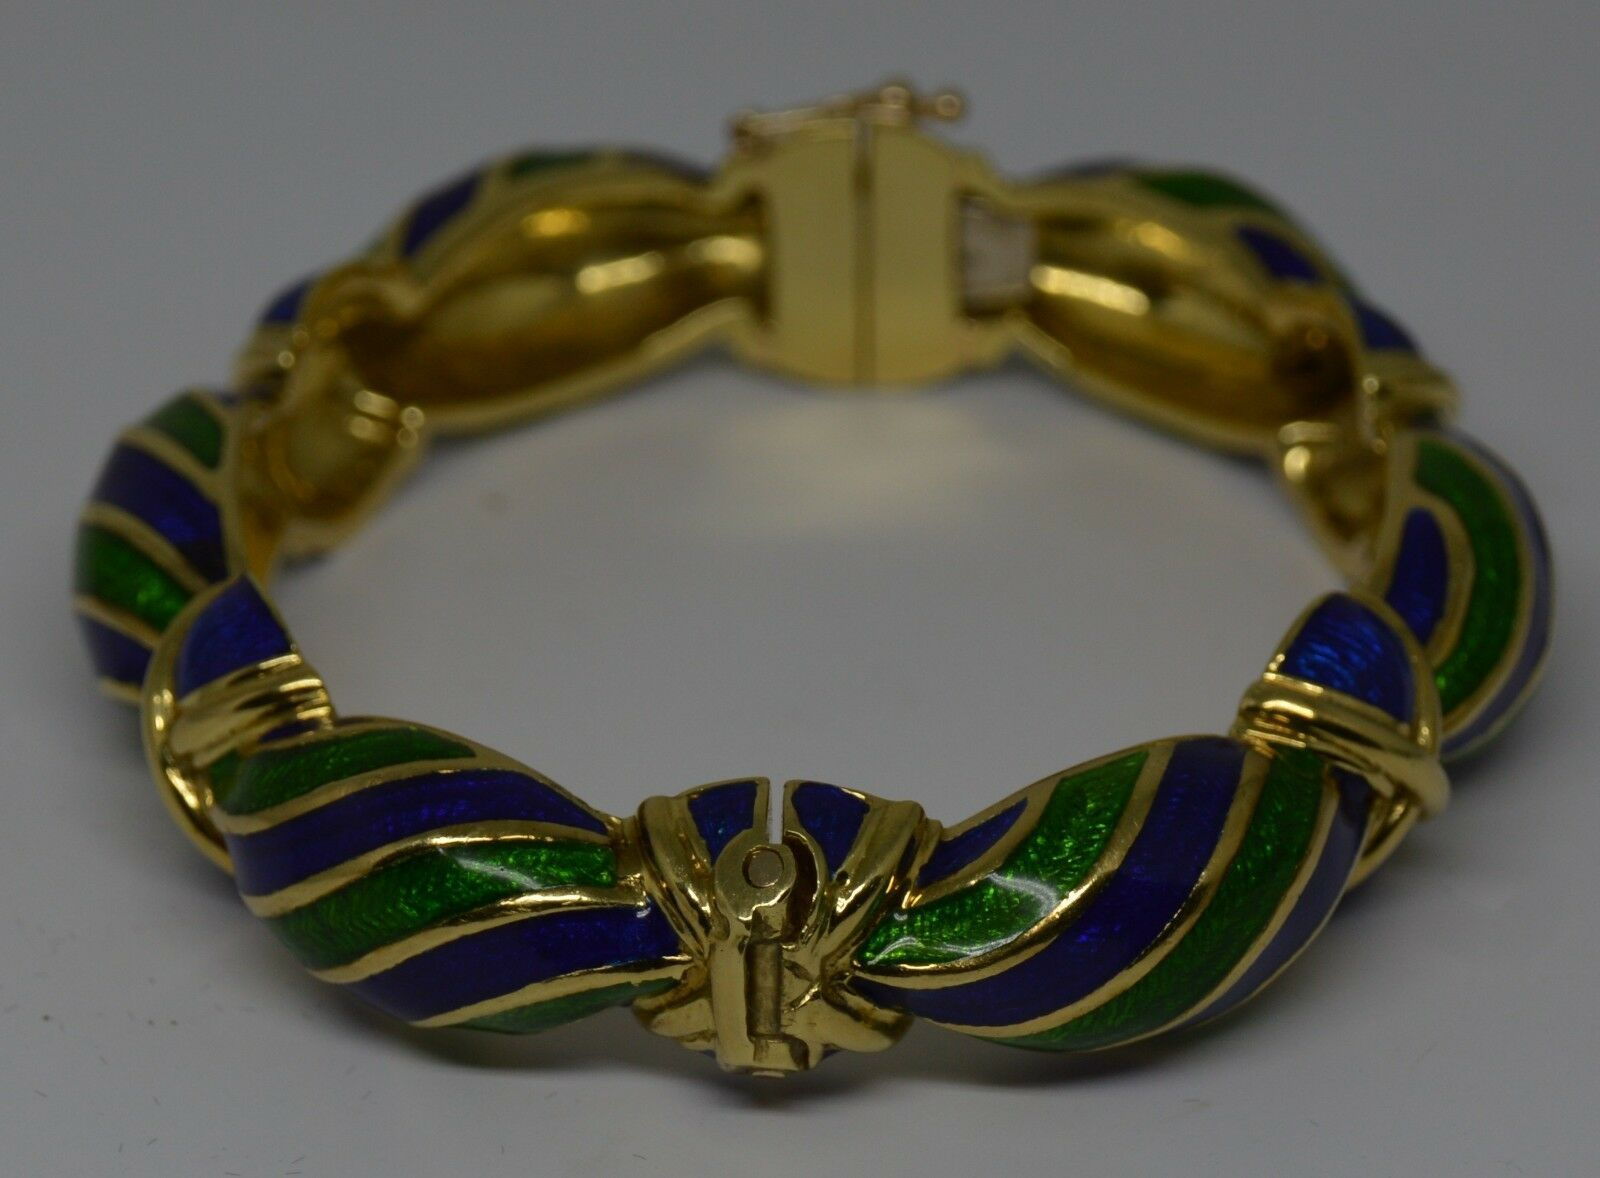 Vintage Tiffany & Co Blue Green Enamel & 18K yellow Gold Hinged Curved Bangle image 6